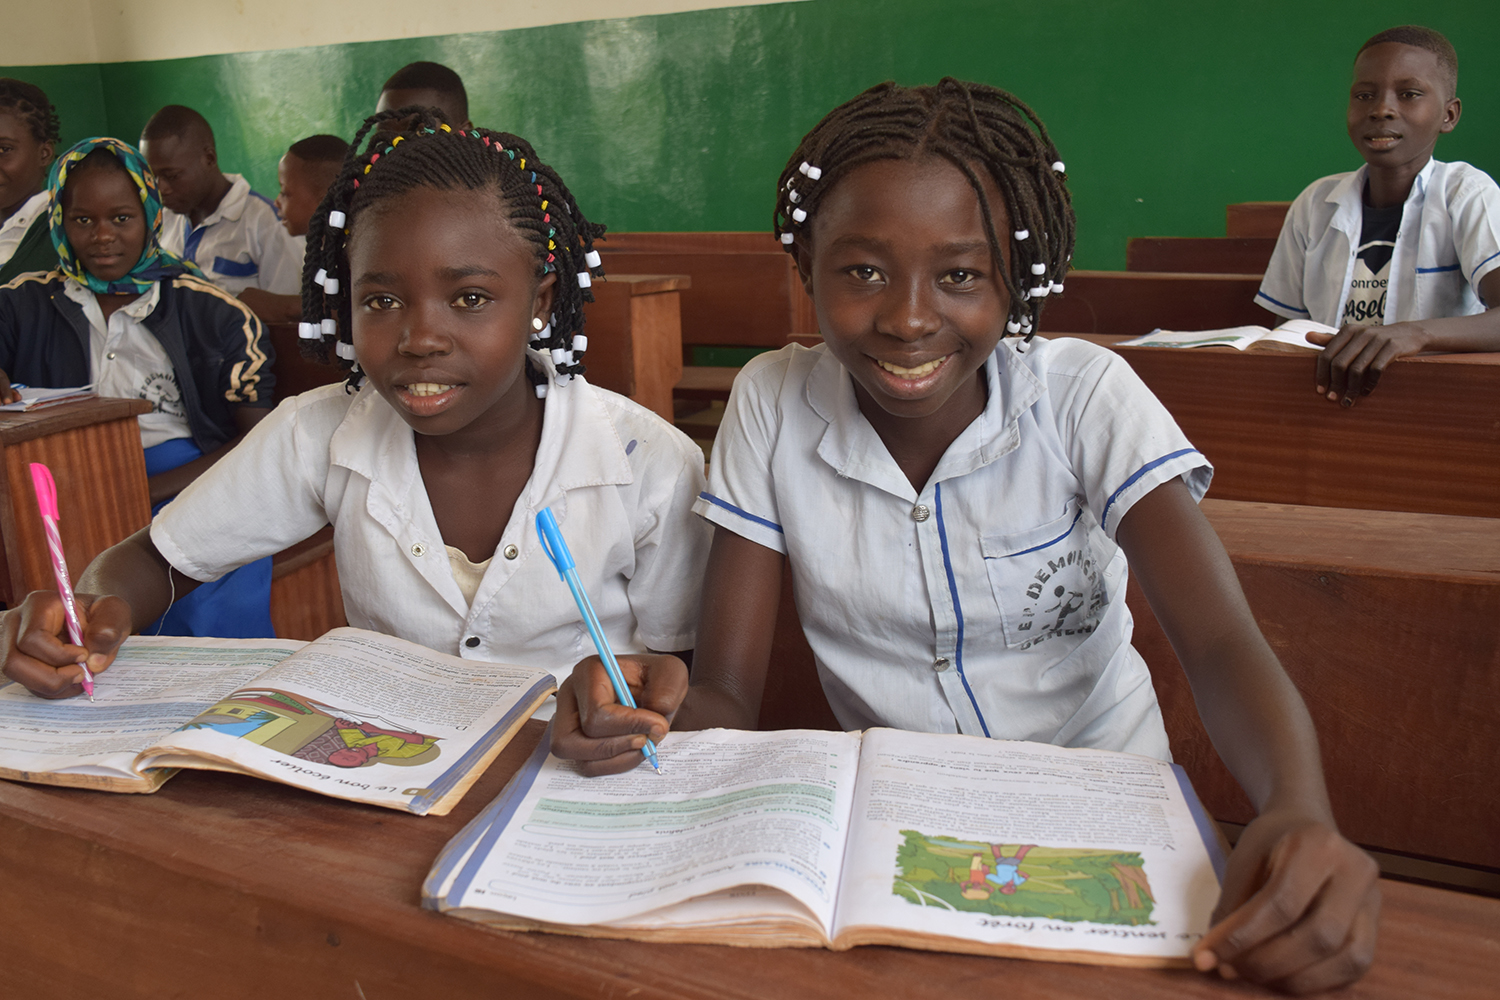 Education in the Democratic Republic of Congo